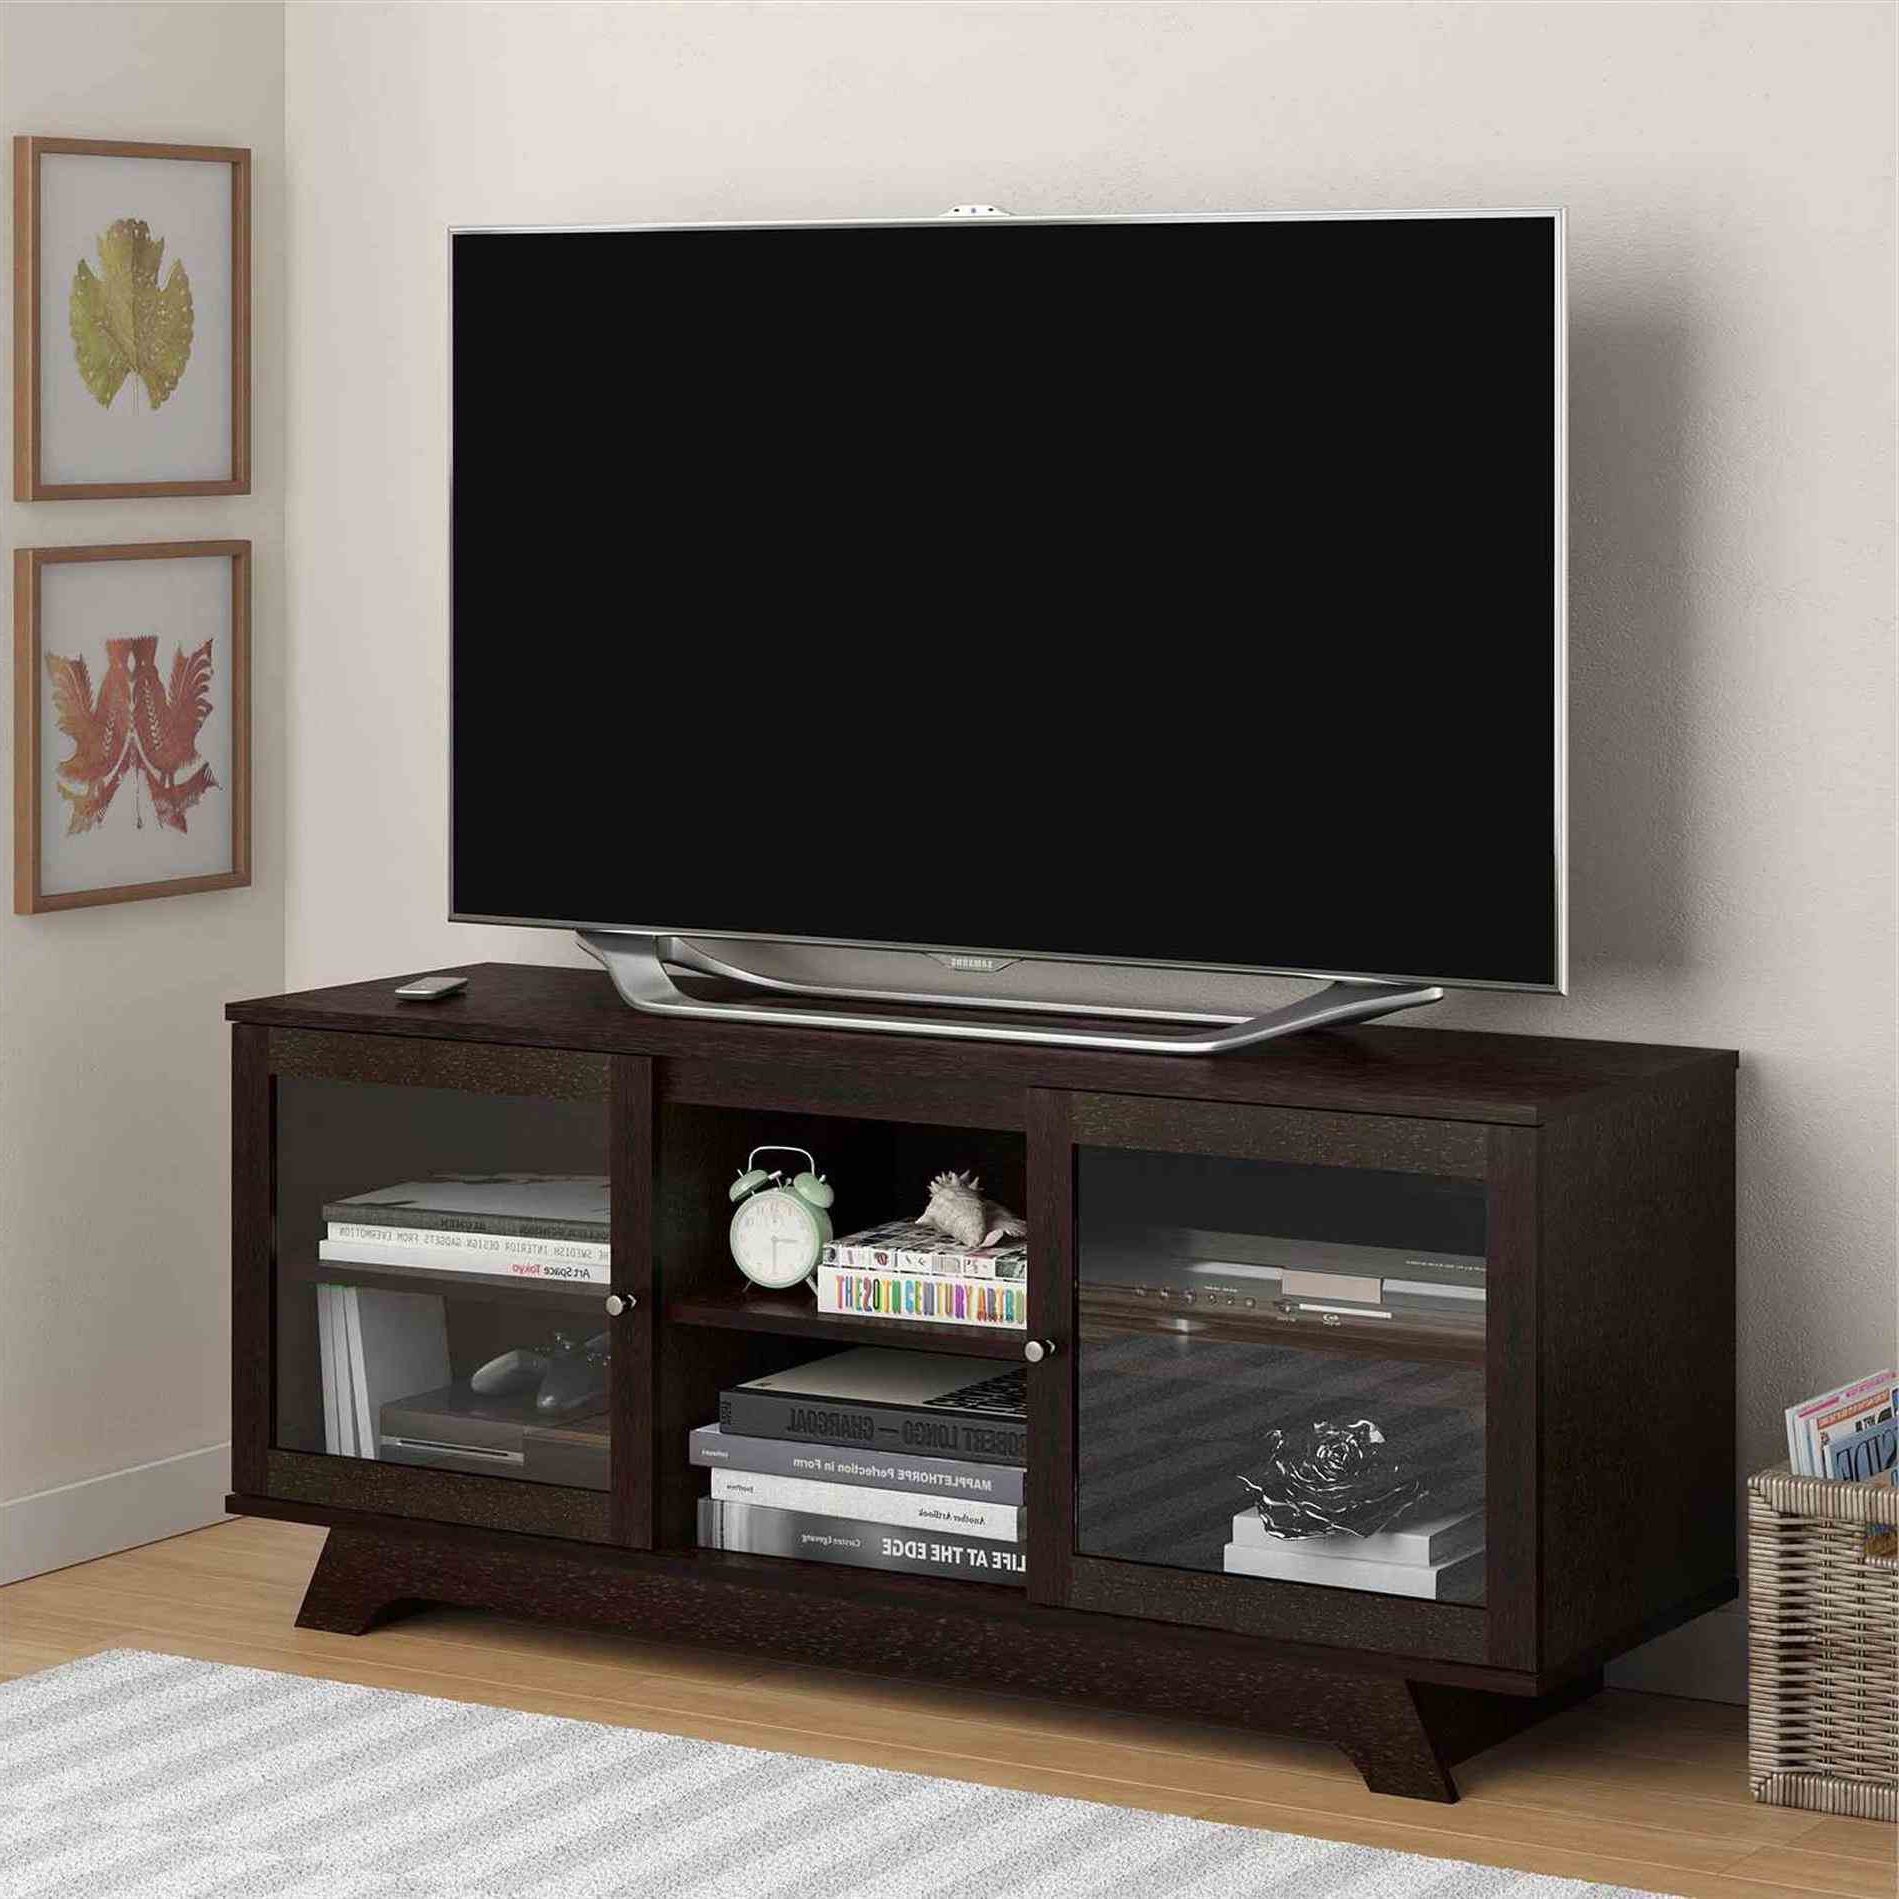 Oak Entertainment Center Wall Units Rc Willey Sale Delivery Draper In Draper 62 Inch Tv Stands (Gallery 8 of 20)